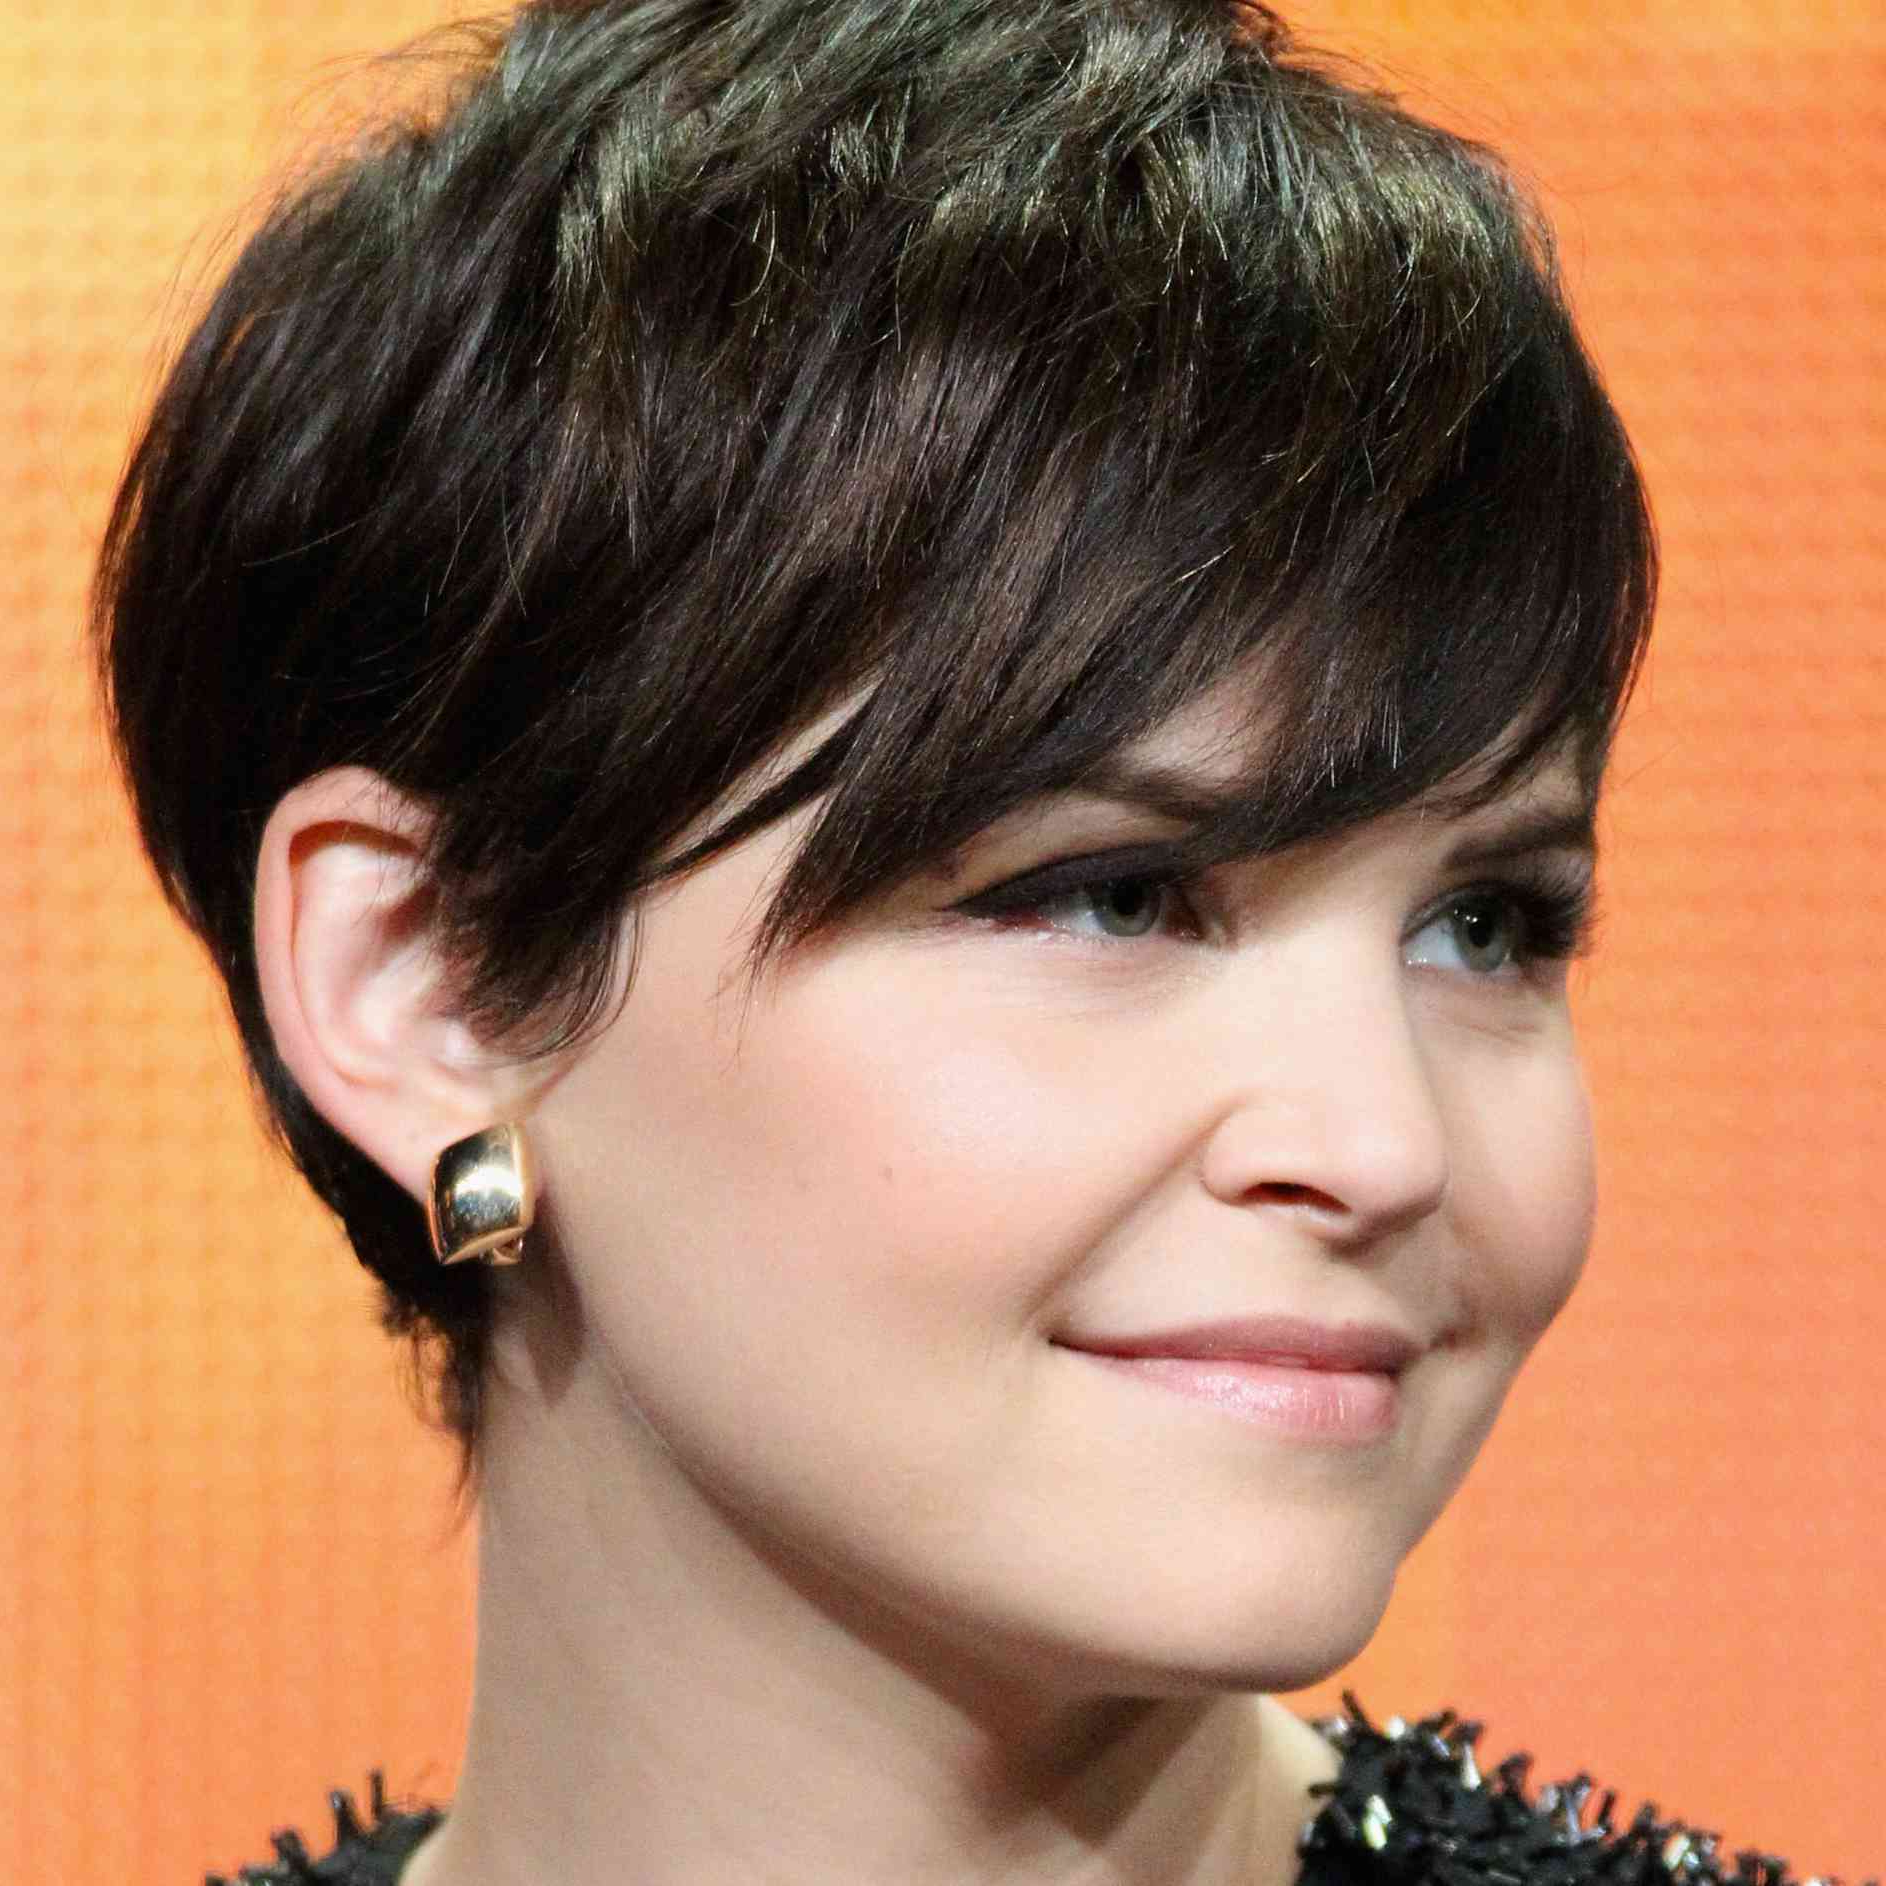 The Best Short Haircuts For Brunettes In Most Up To Date Morena Pixie Haircuts With Bangs (View 17 of 20)